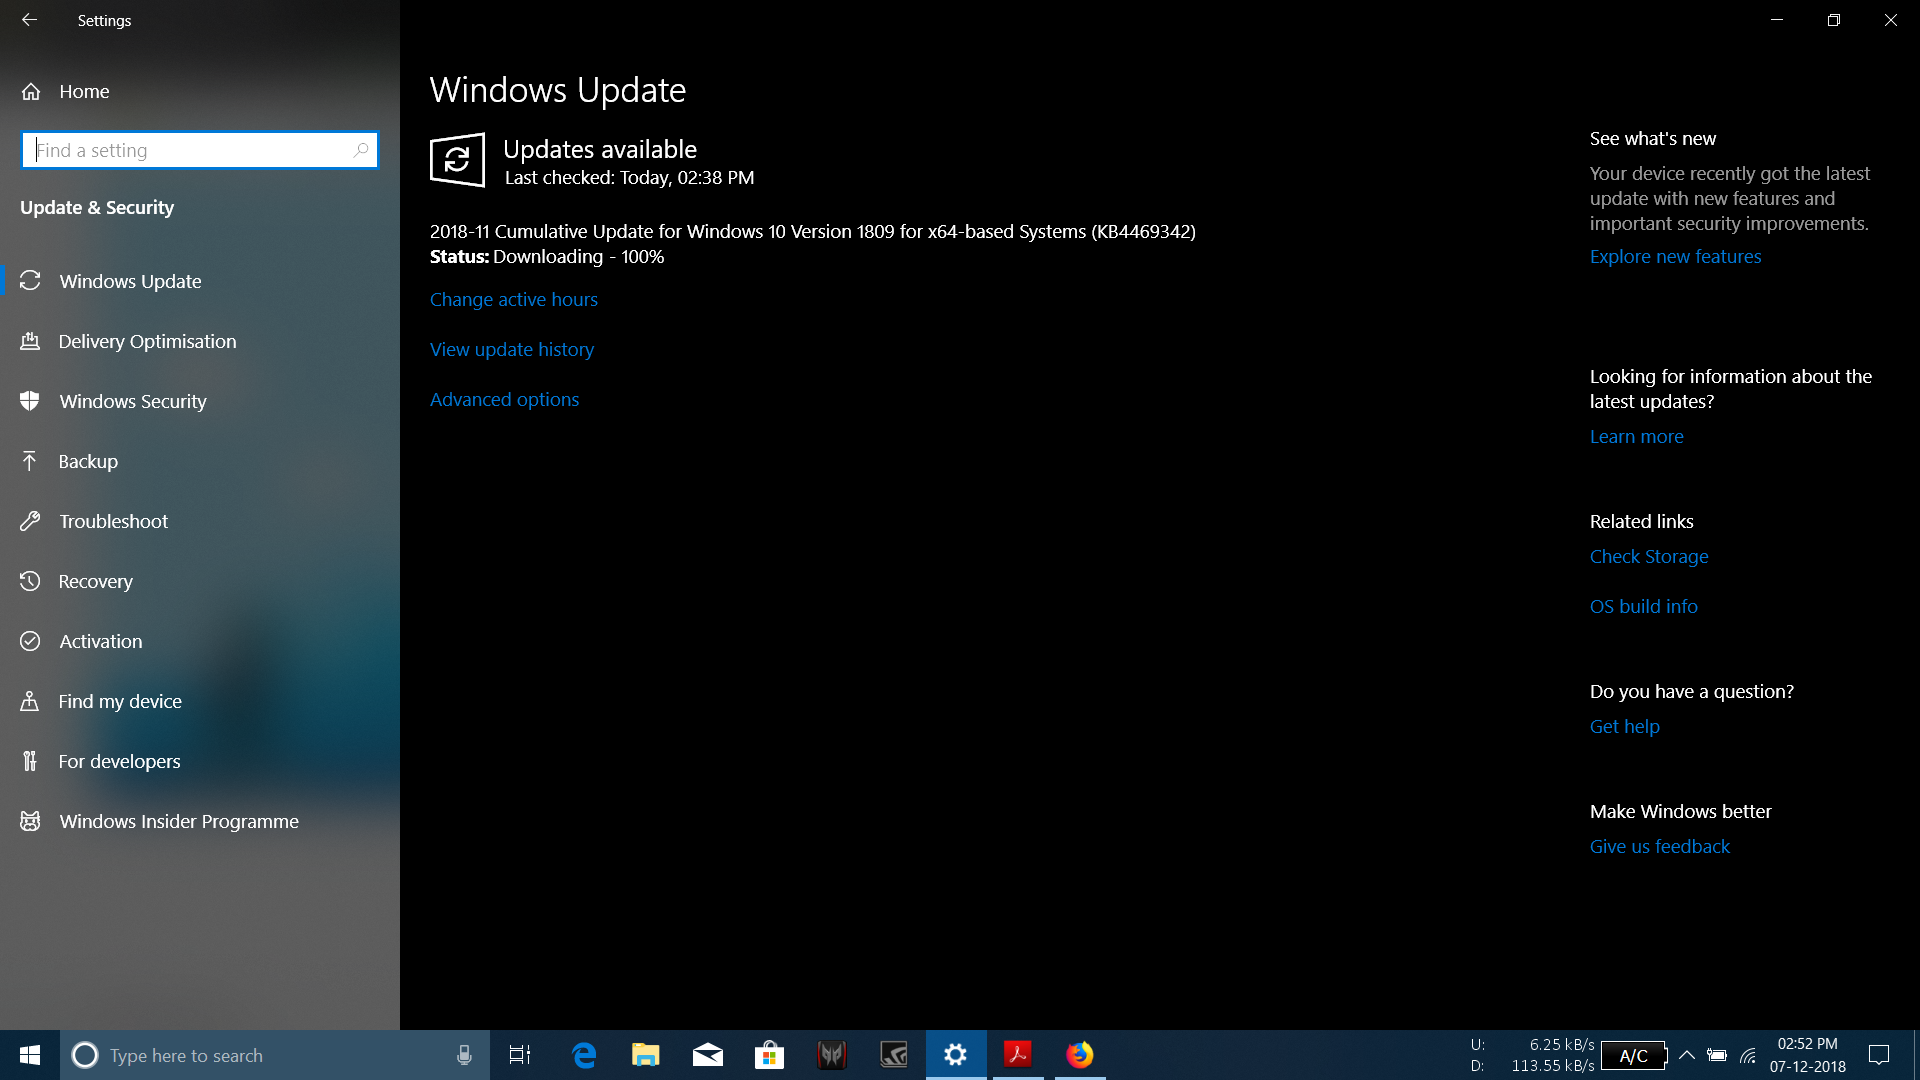 Windows Update tries to install an already-installed update. 3ab249ce-7e99-42e7-94d2-0c8590592cc9?upload=true.png